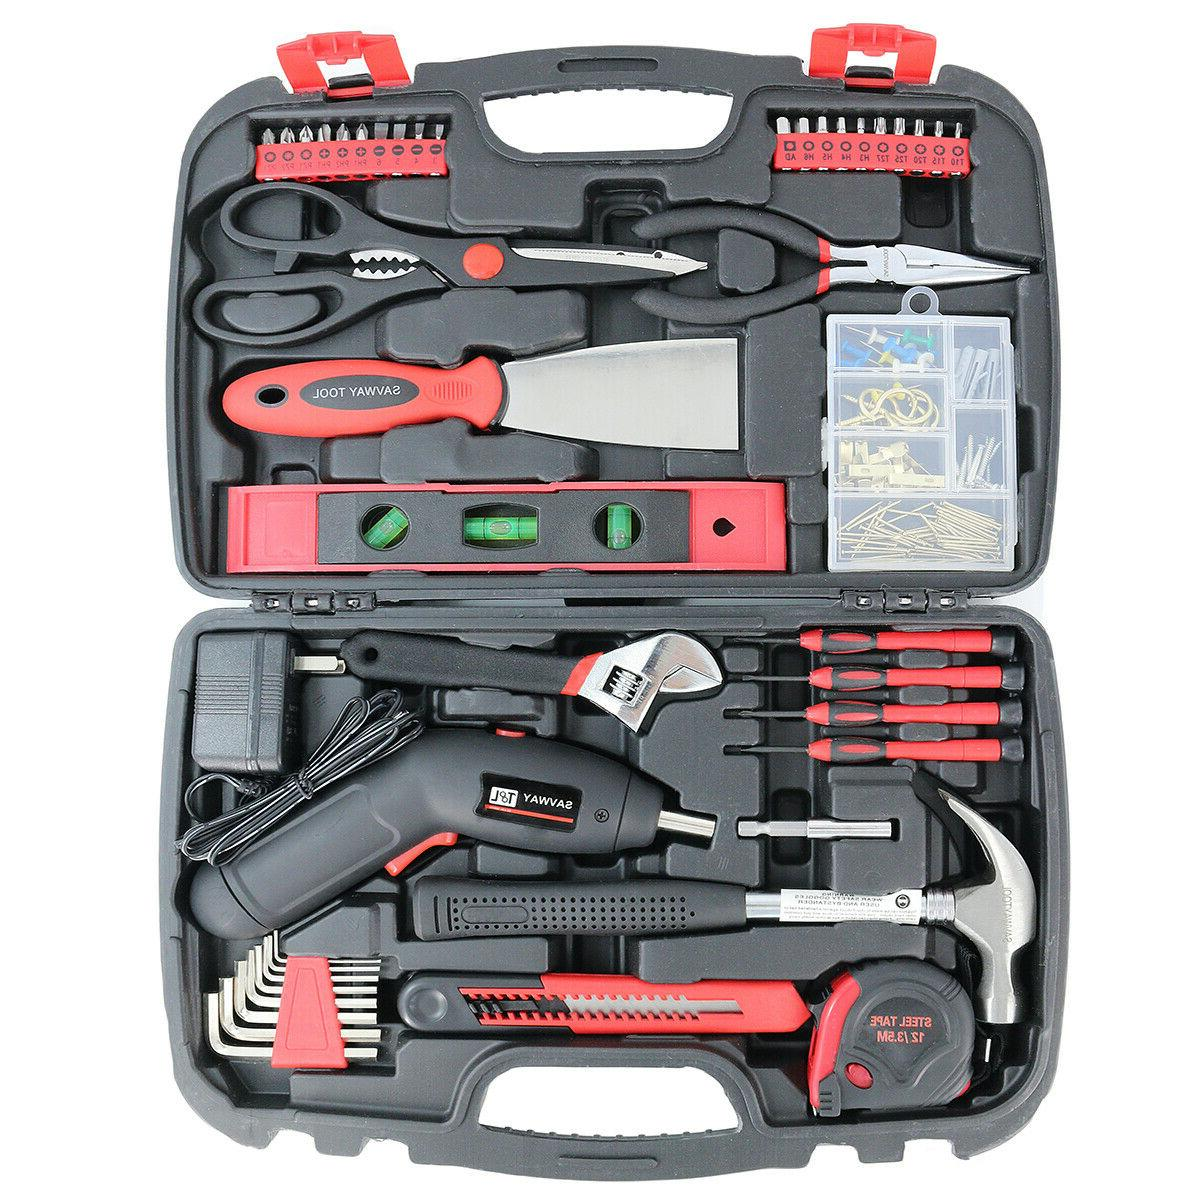 SAVWAY Household Power Rechargeable Cordless Drill